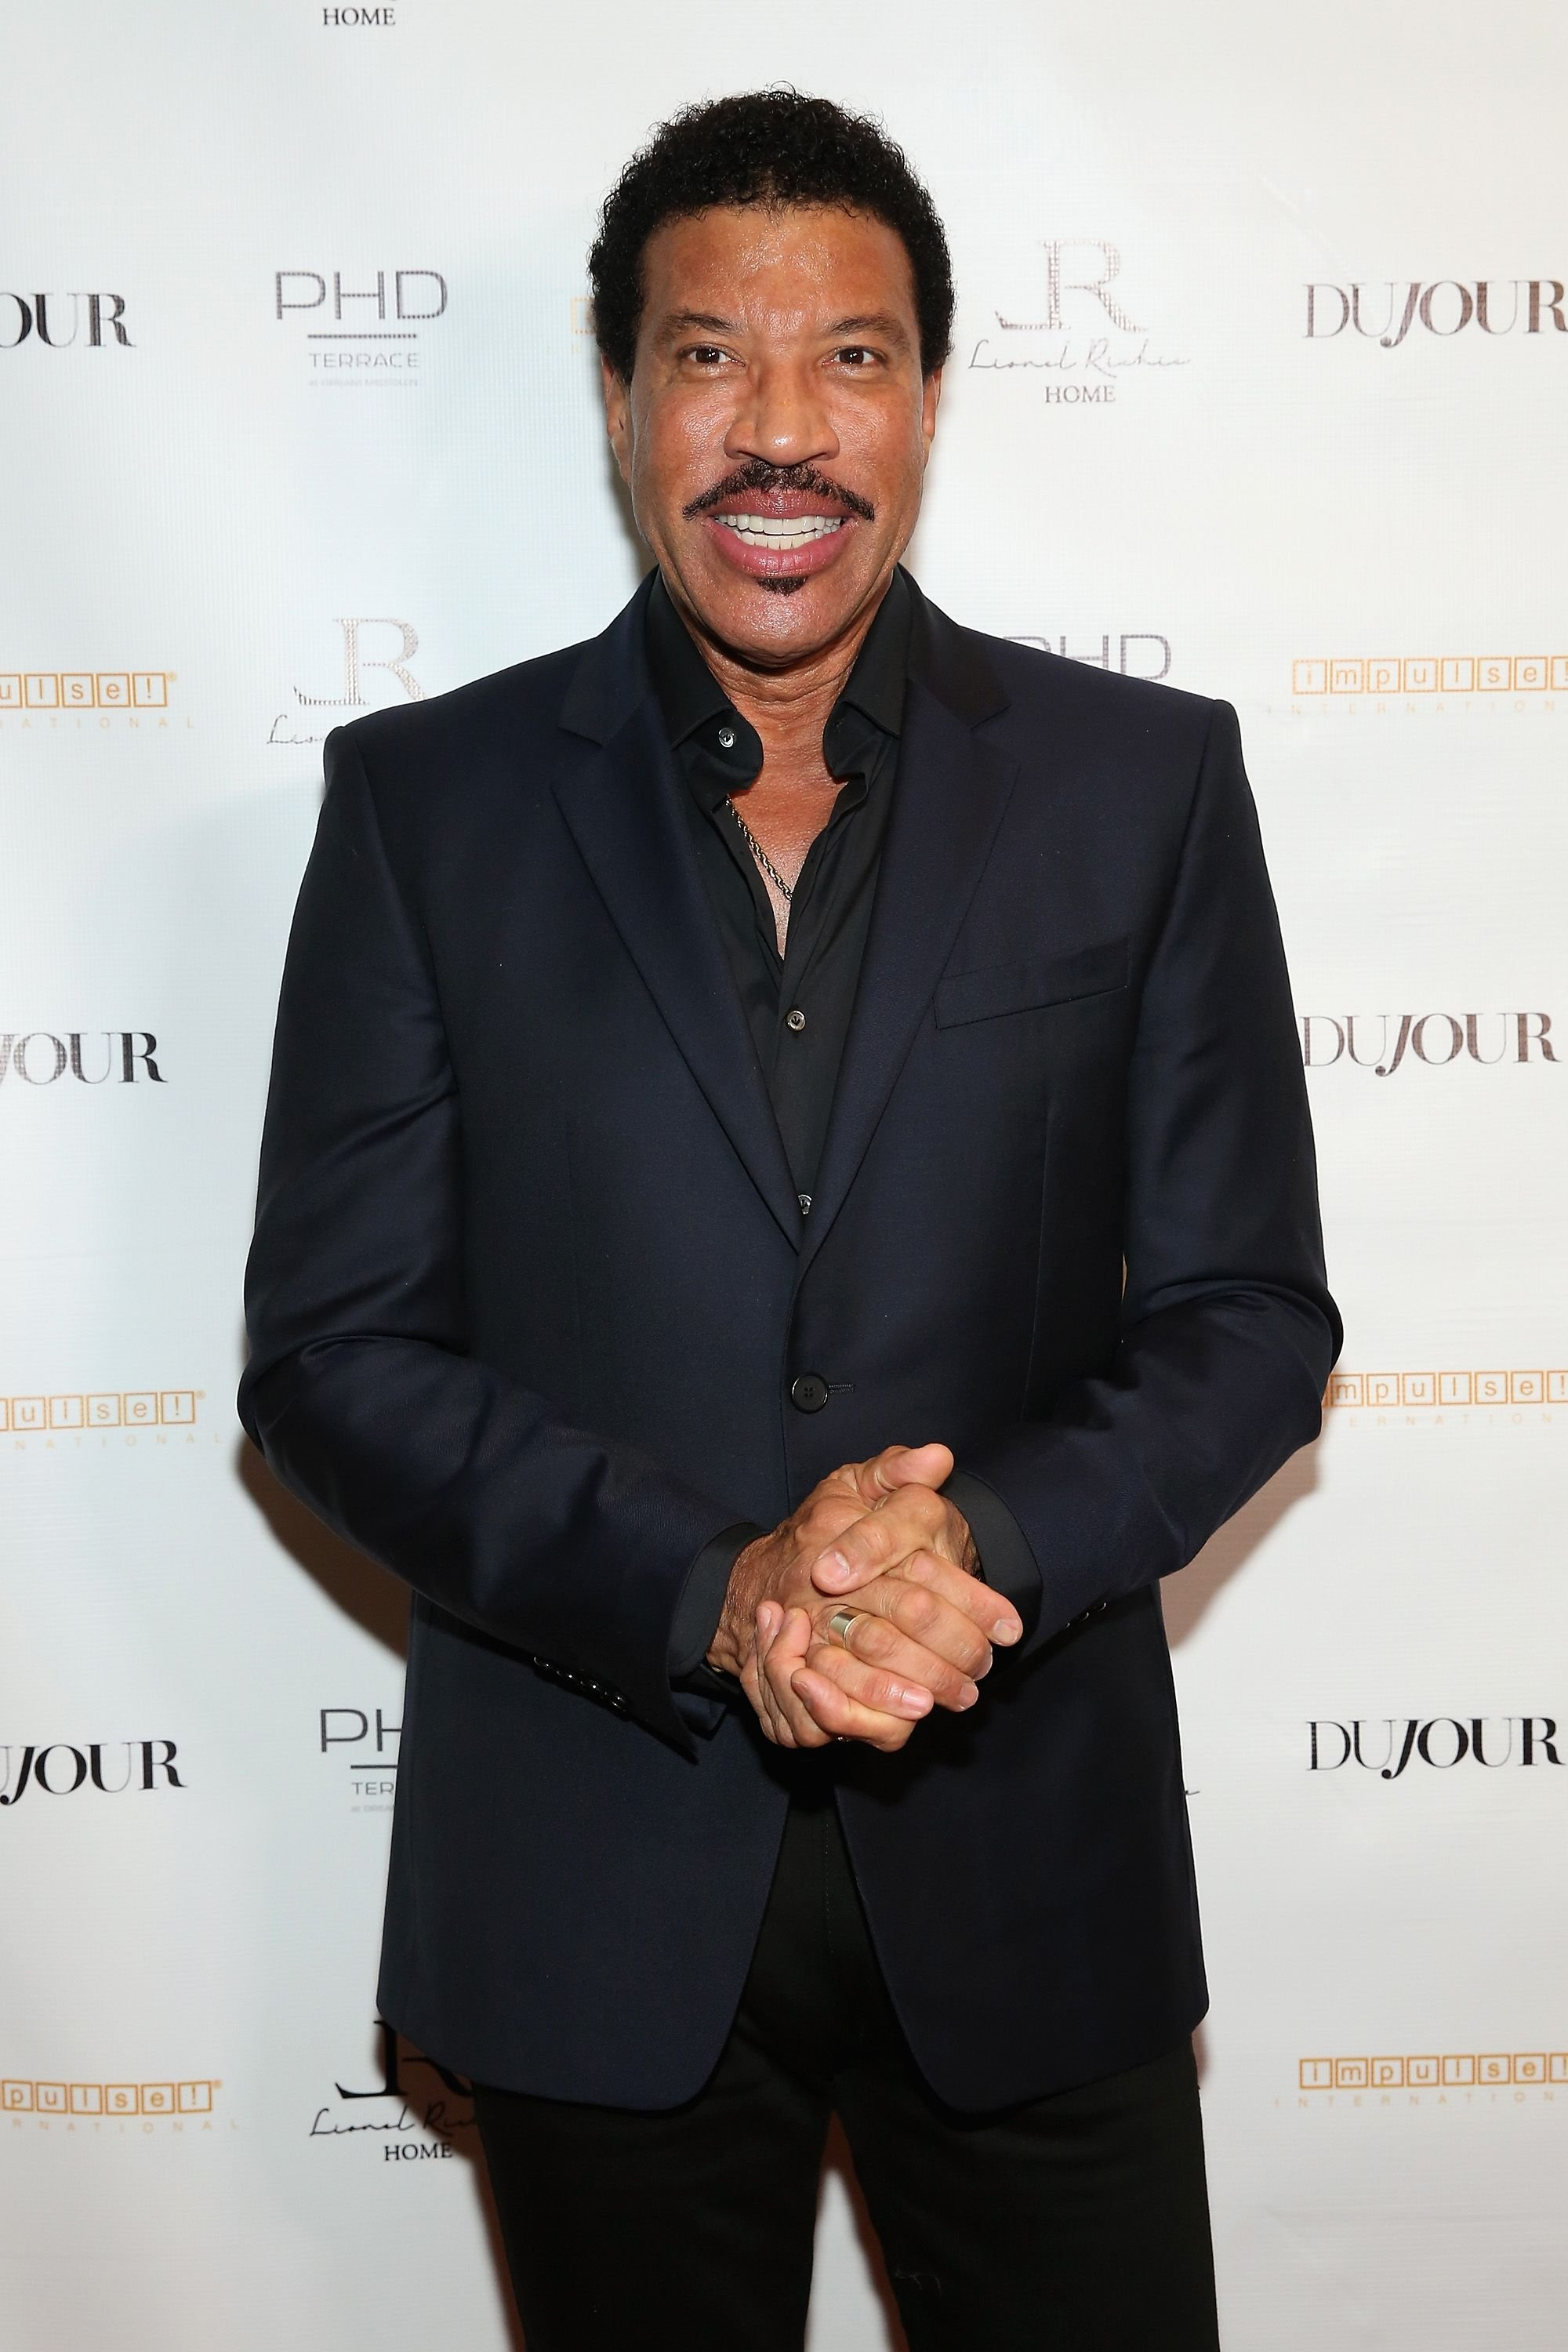 Lionel Richie at Jason Binn's DuJour Magazine and Lionel Richie Home Collection launch on October 27, 2015. | Photo: Getty Images